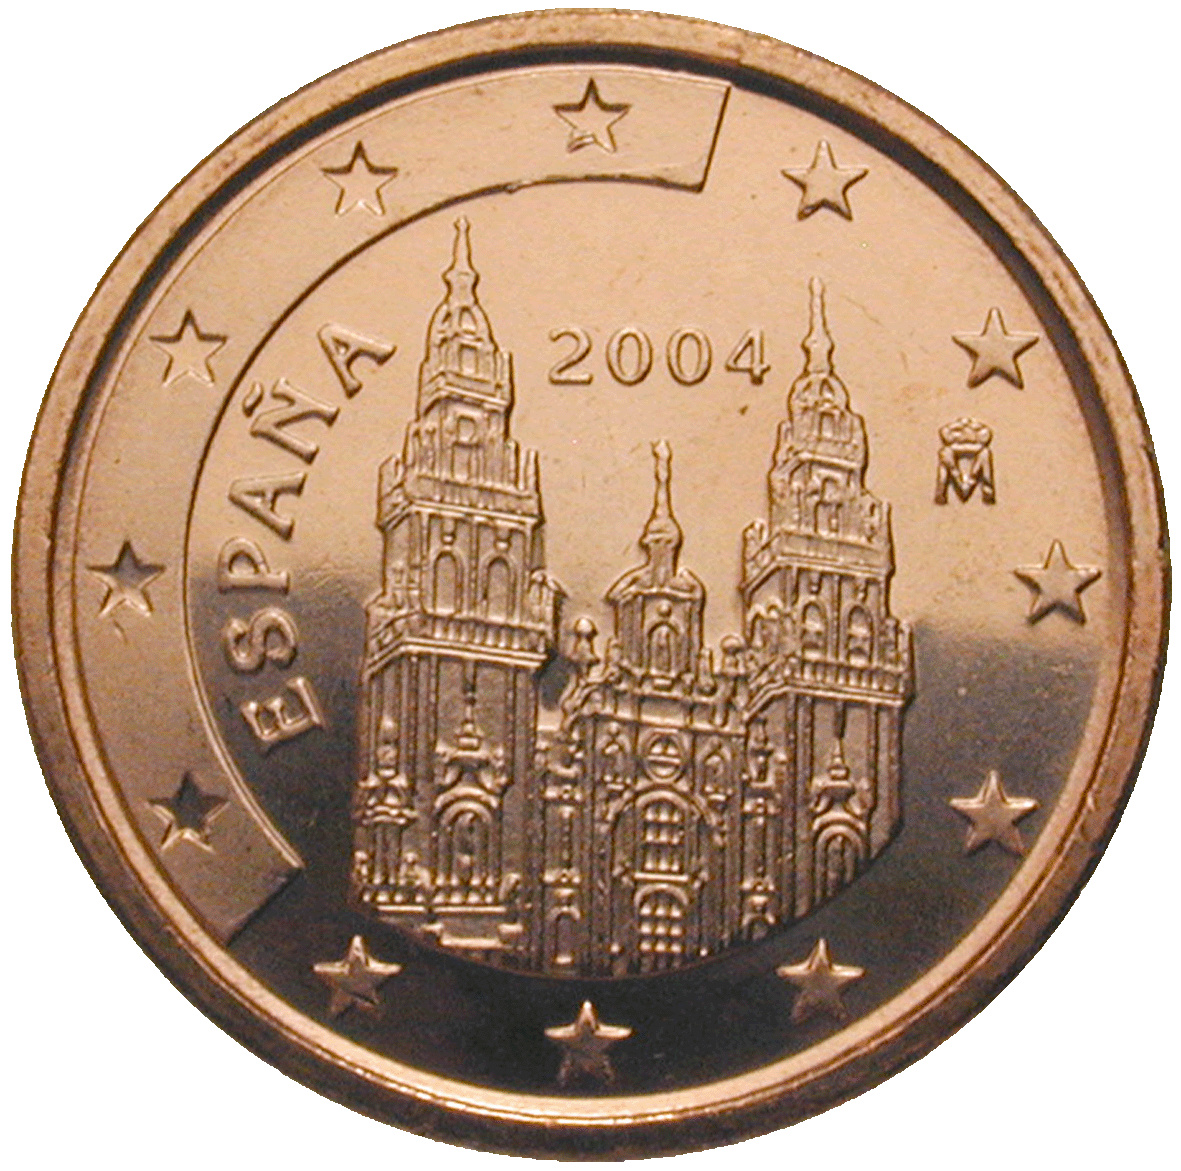 Kingdom of Spain, Juan Carlos, 1 Euro Cent 2004 (obverse)